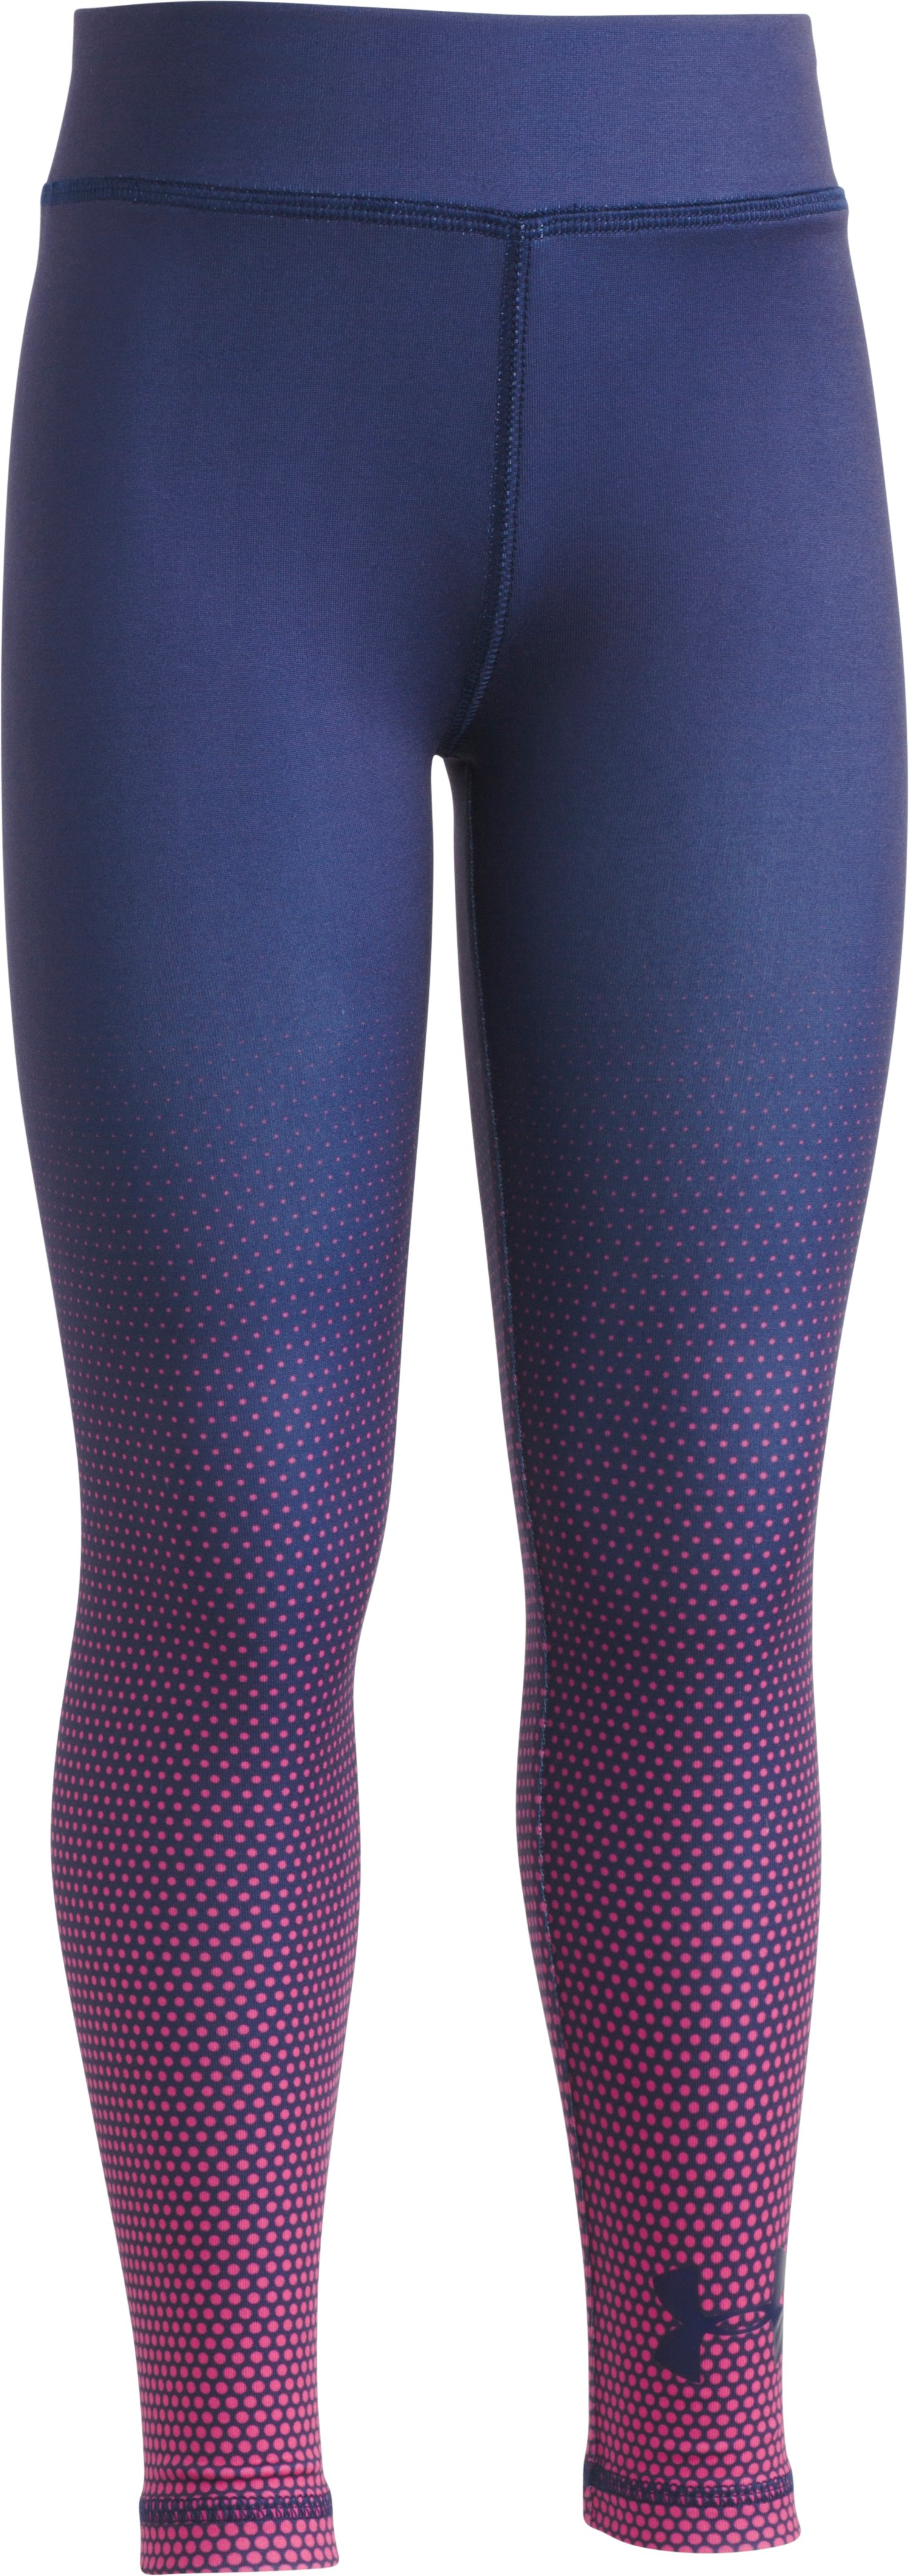 Girls' Toddler UA Fast Track Leggings, Midnight Navy, zoomed